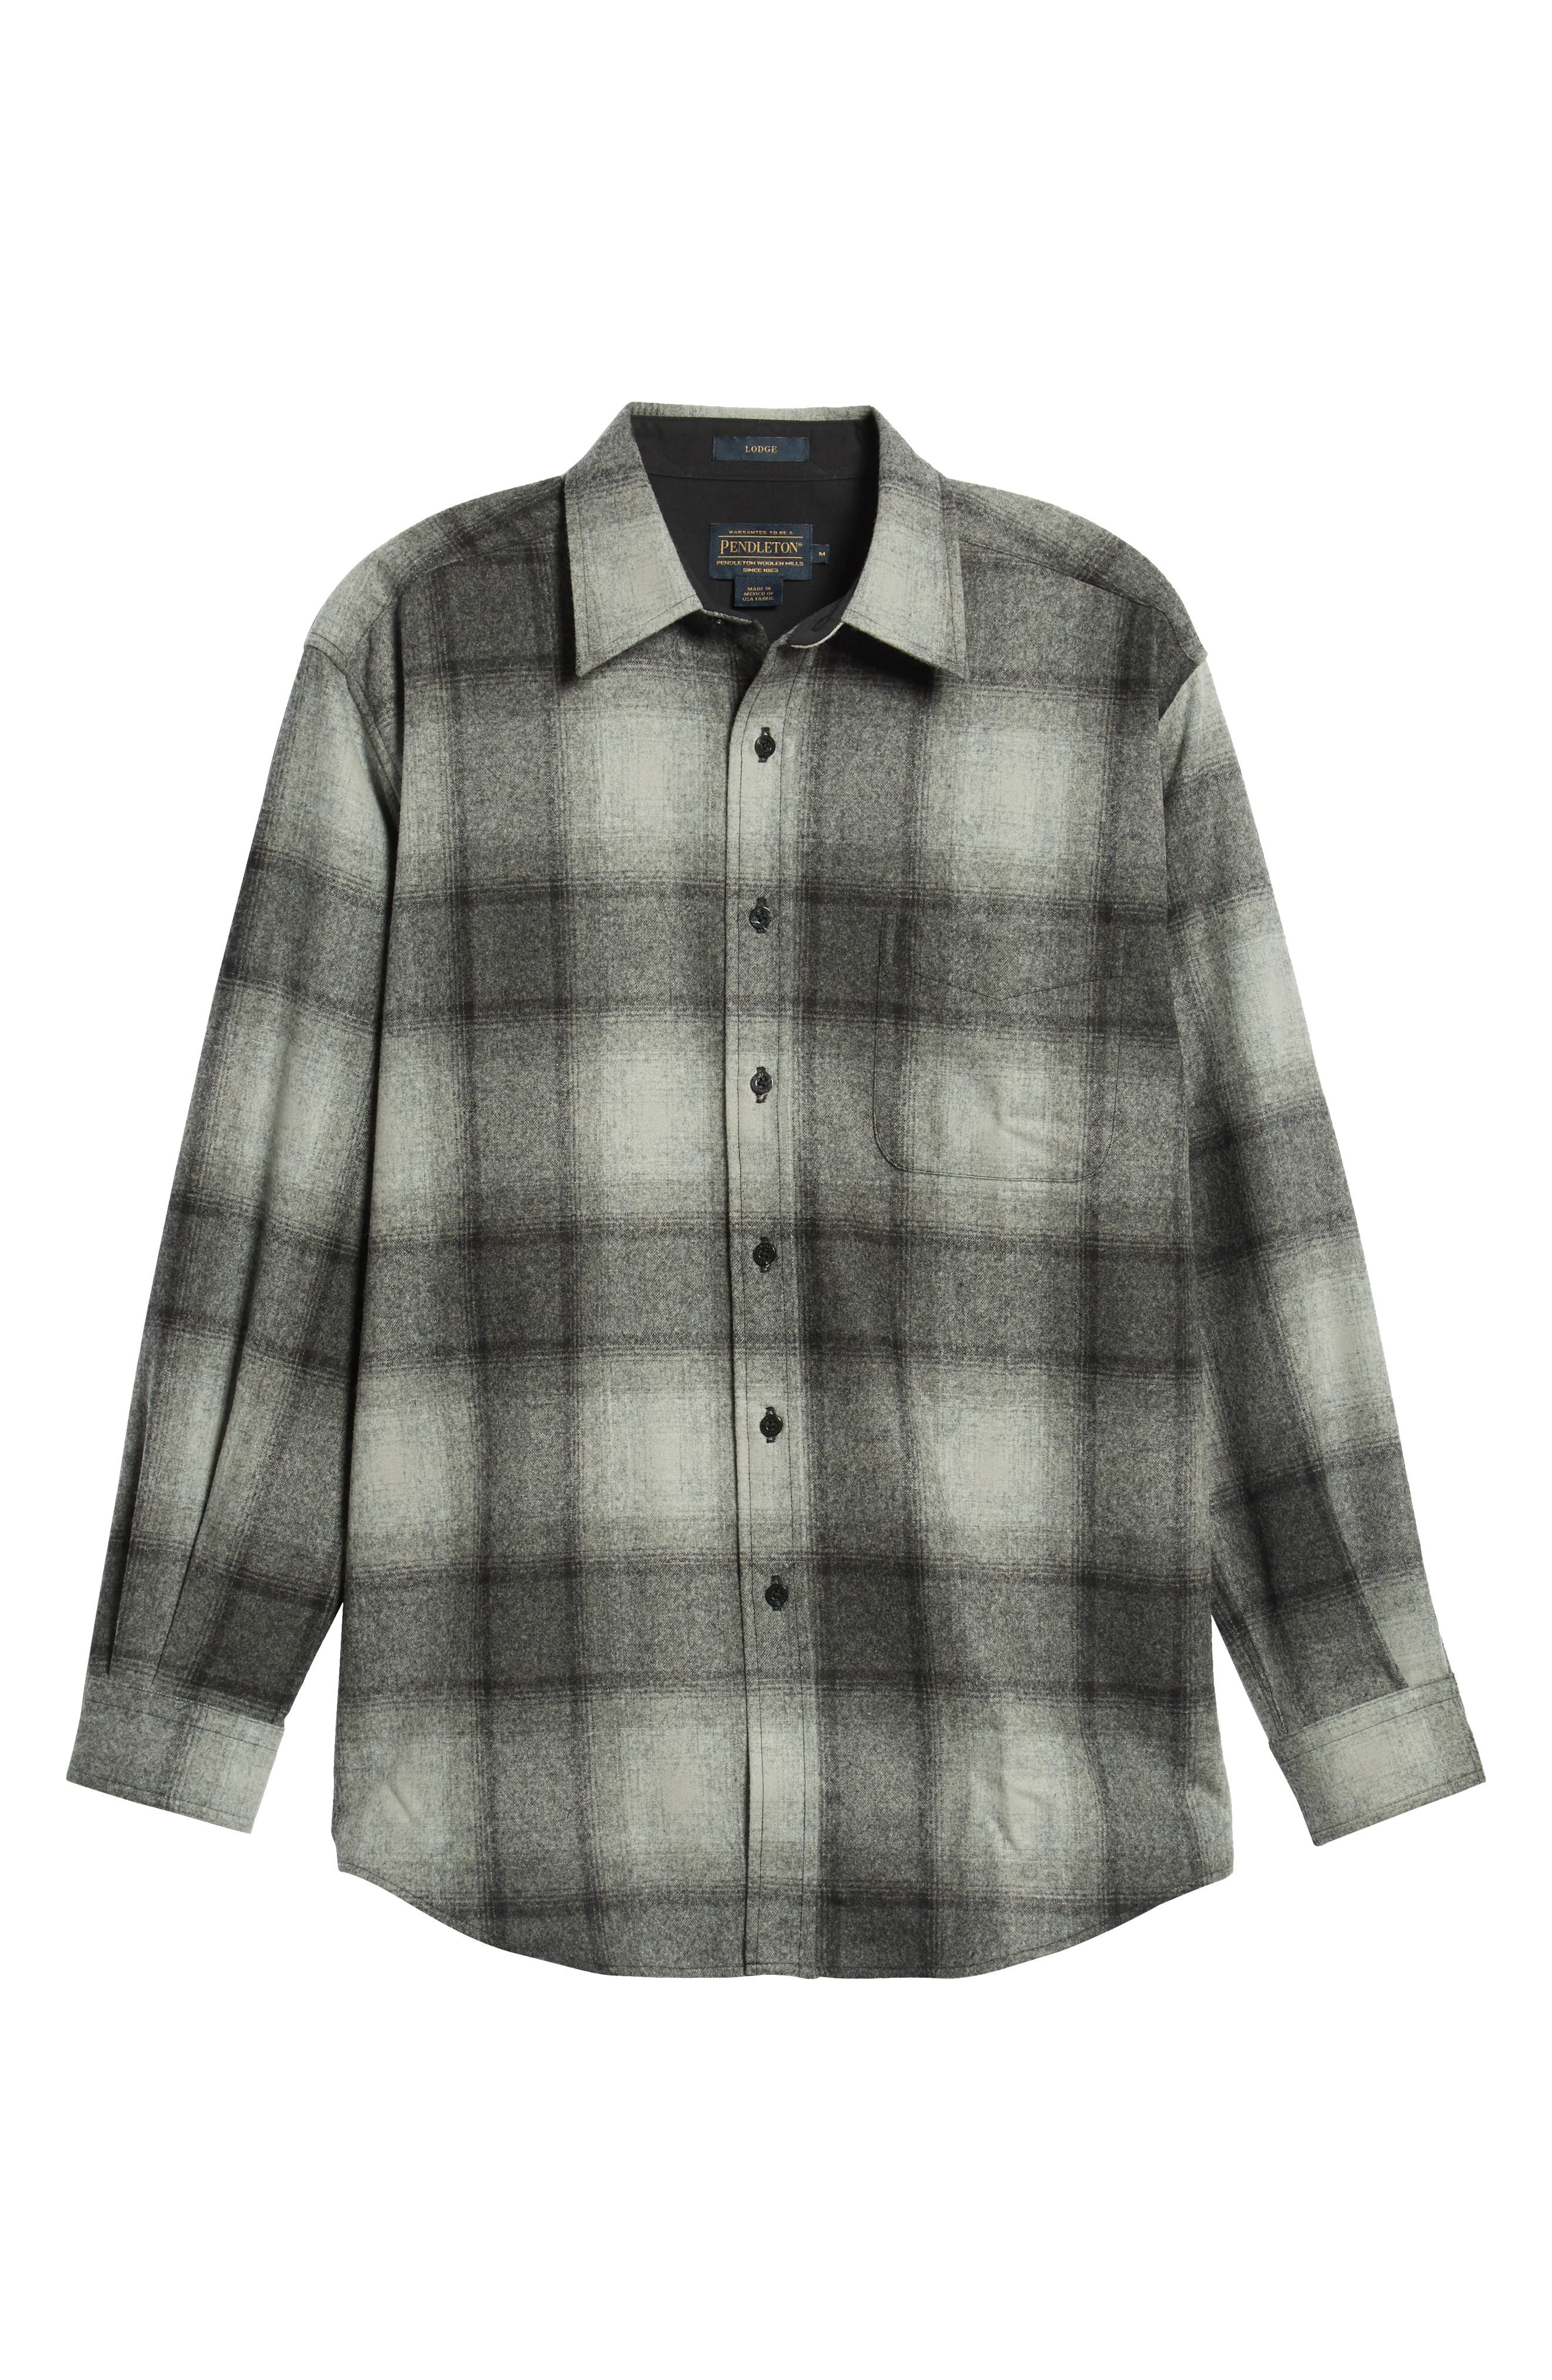 Lodge Wool Flannel Shirt,                             Alternate thumbnail 5, color,                             BLACK/ GREY MIX OMBRE